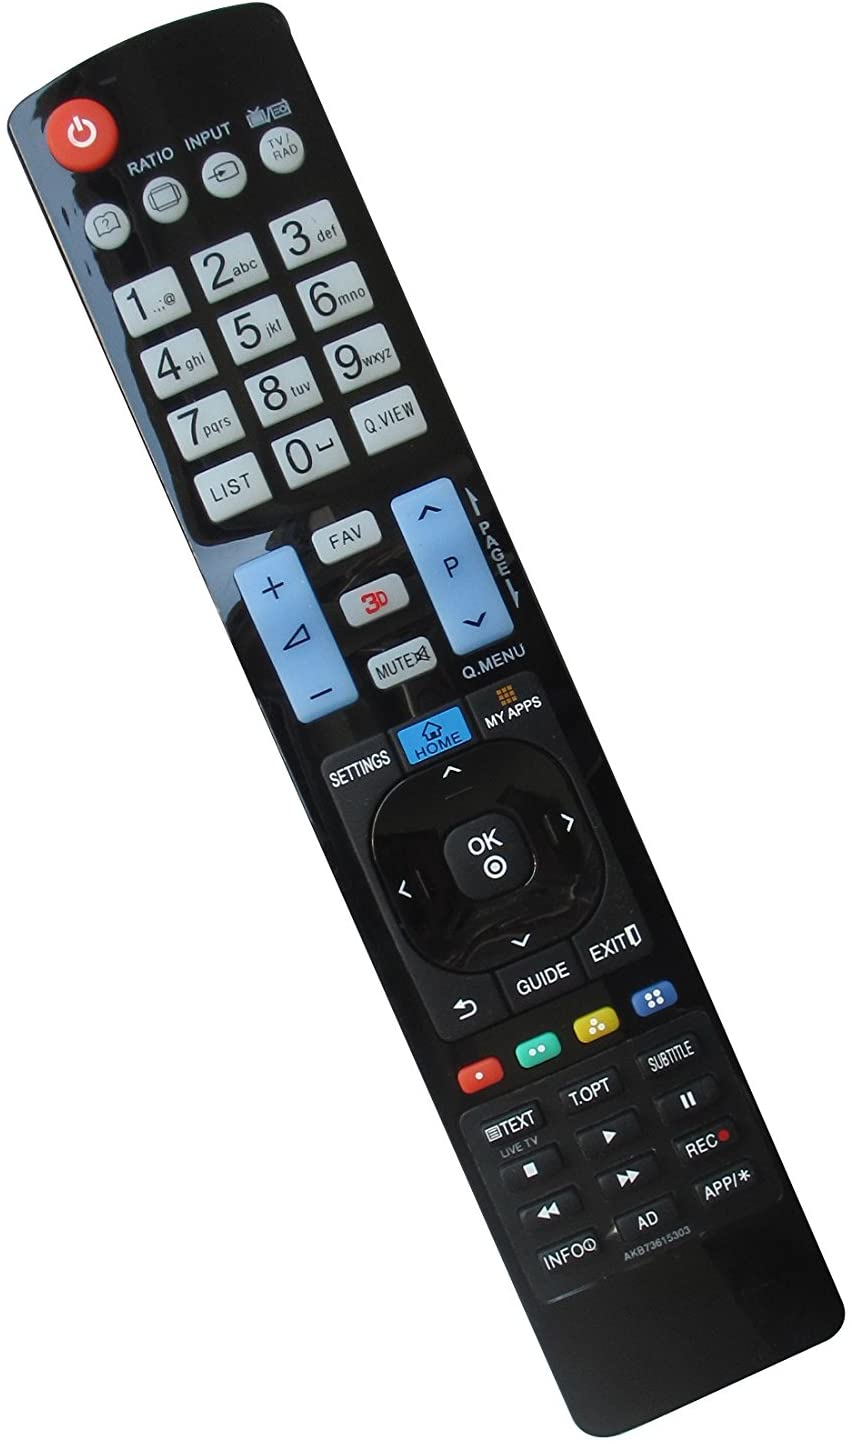 Replacement Remote Control Fit for LG Zenith Z50PV220-UA 42LB5510 AKB73655806 AKB73655839 32LB580B 50LB5800 55LB5800 50LA6620 55LA7410 55LA6620 32LE5500 37LE5500 42LE5500 Smart 3D Plasma HDTV TV